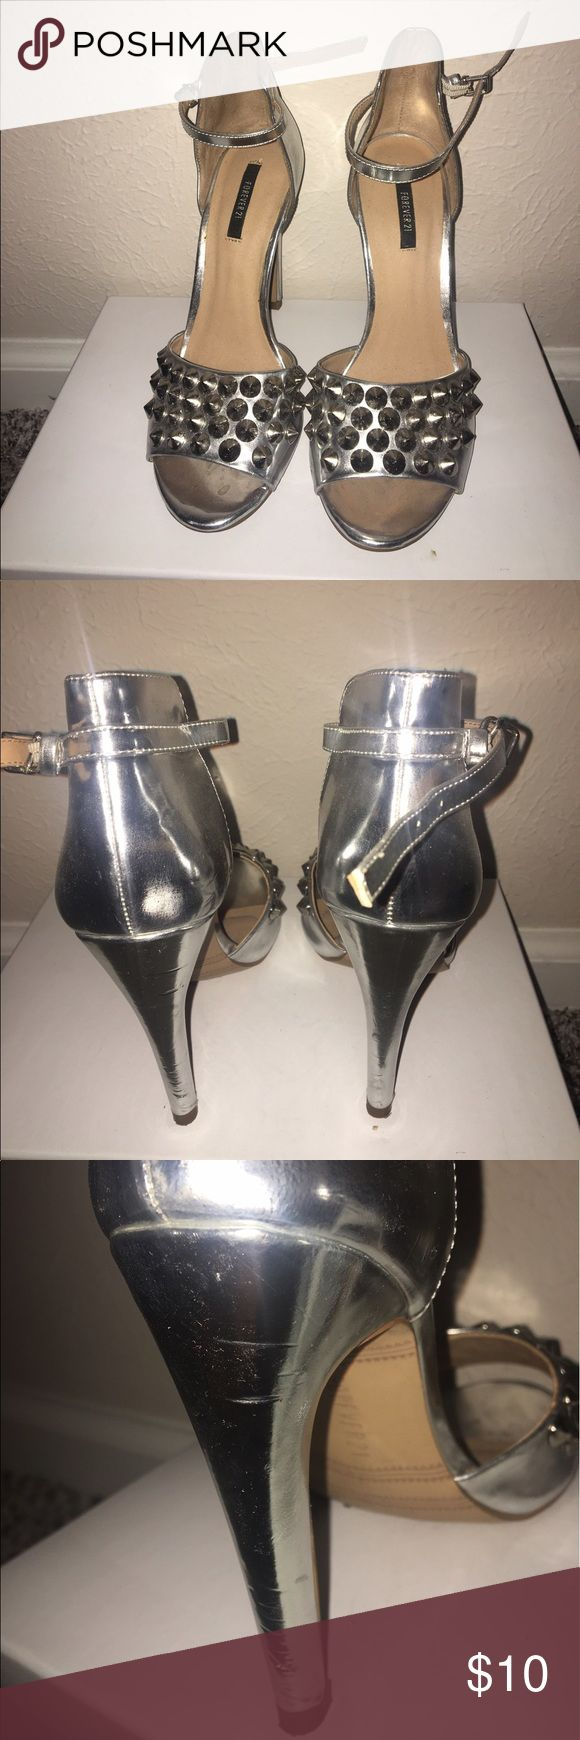 Silver peep toe heel that wraps around ankle Peep toe, silver skinny heel that wraps around your ankle. Have been used and have scuff marks around as you can see by one of the pictures. Forever 21 Shoes Heels